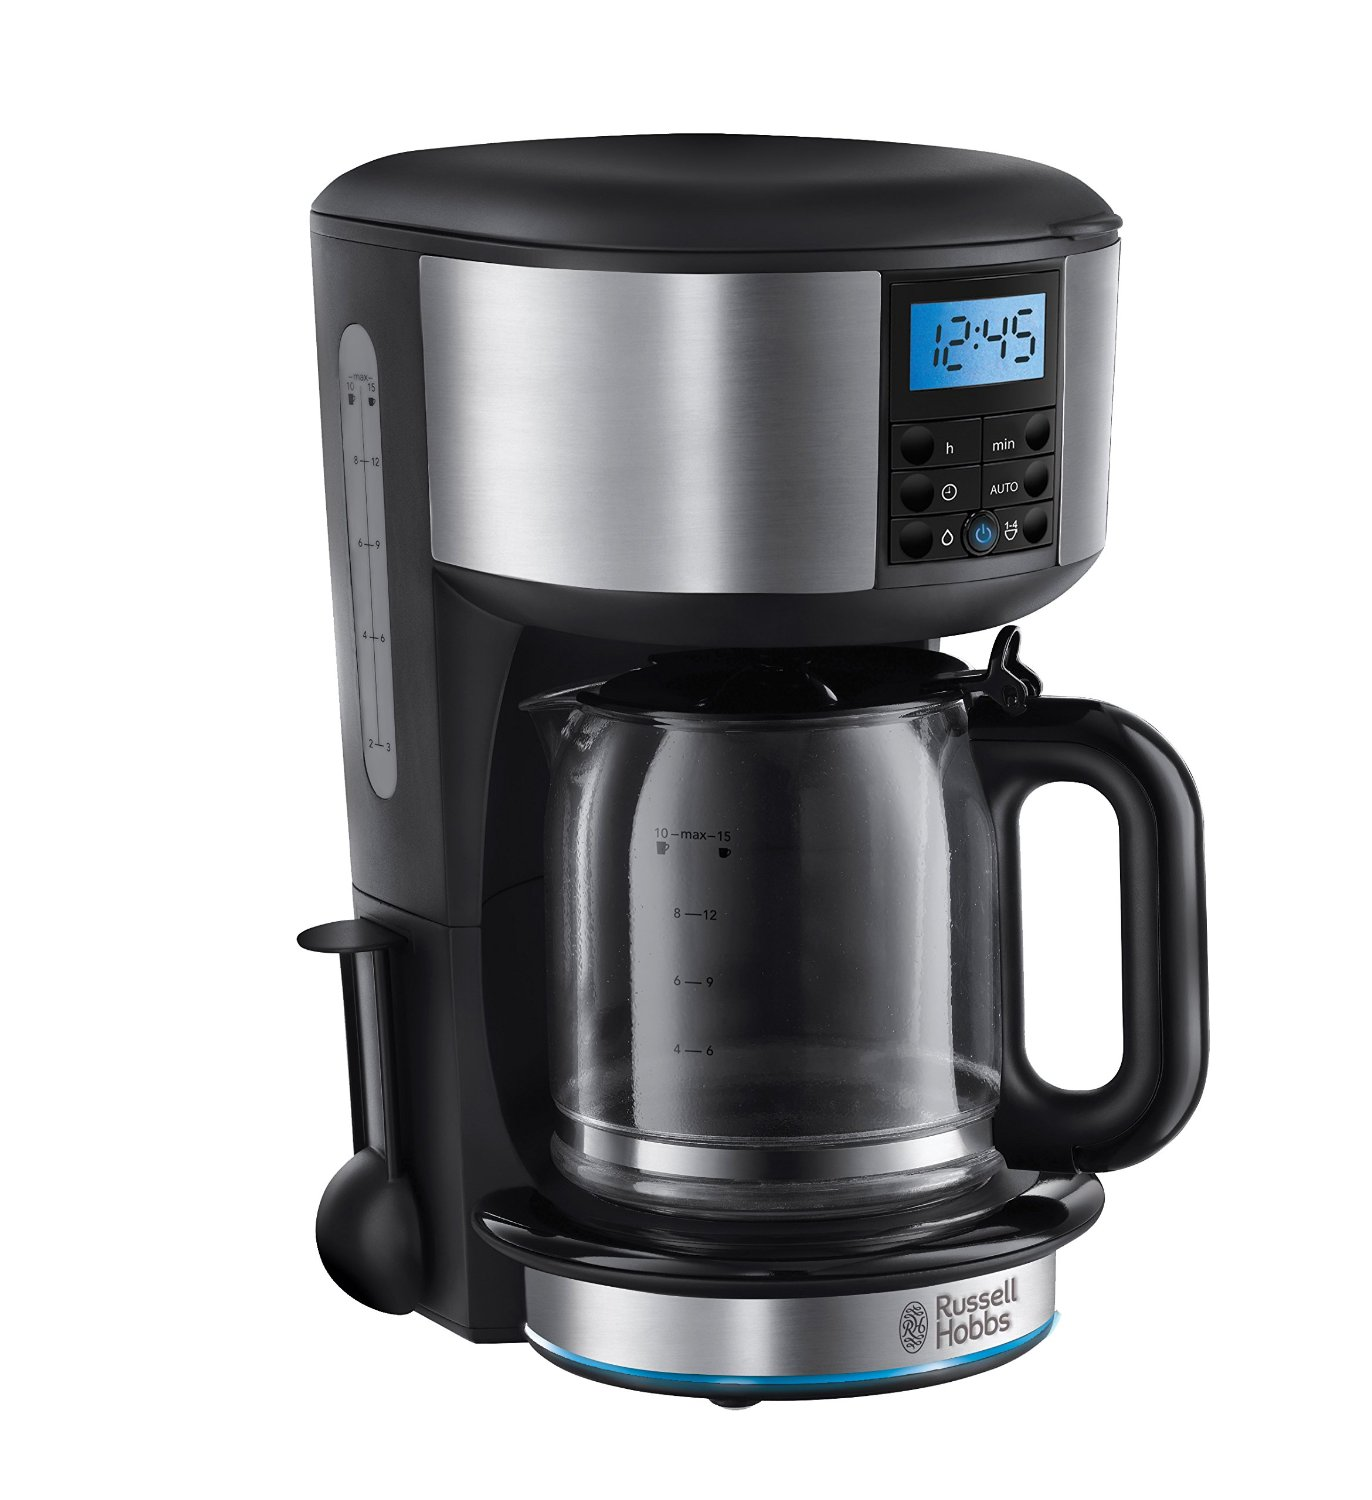 Russell Hobbs 20680 Buckingham Coffee Maker